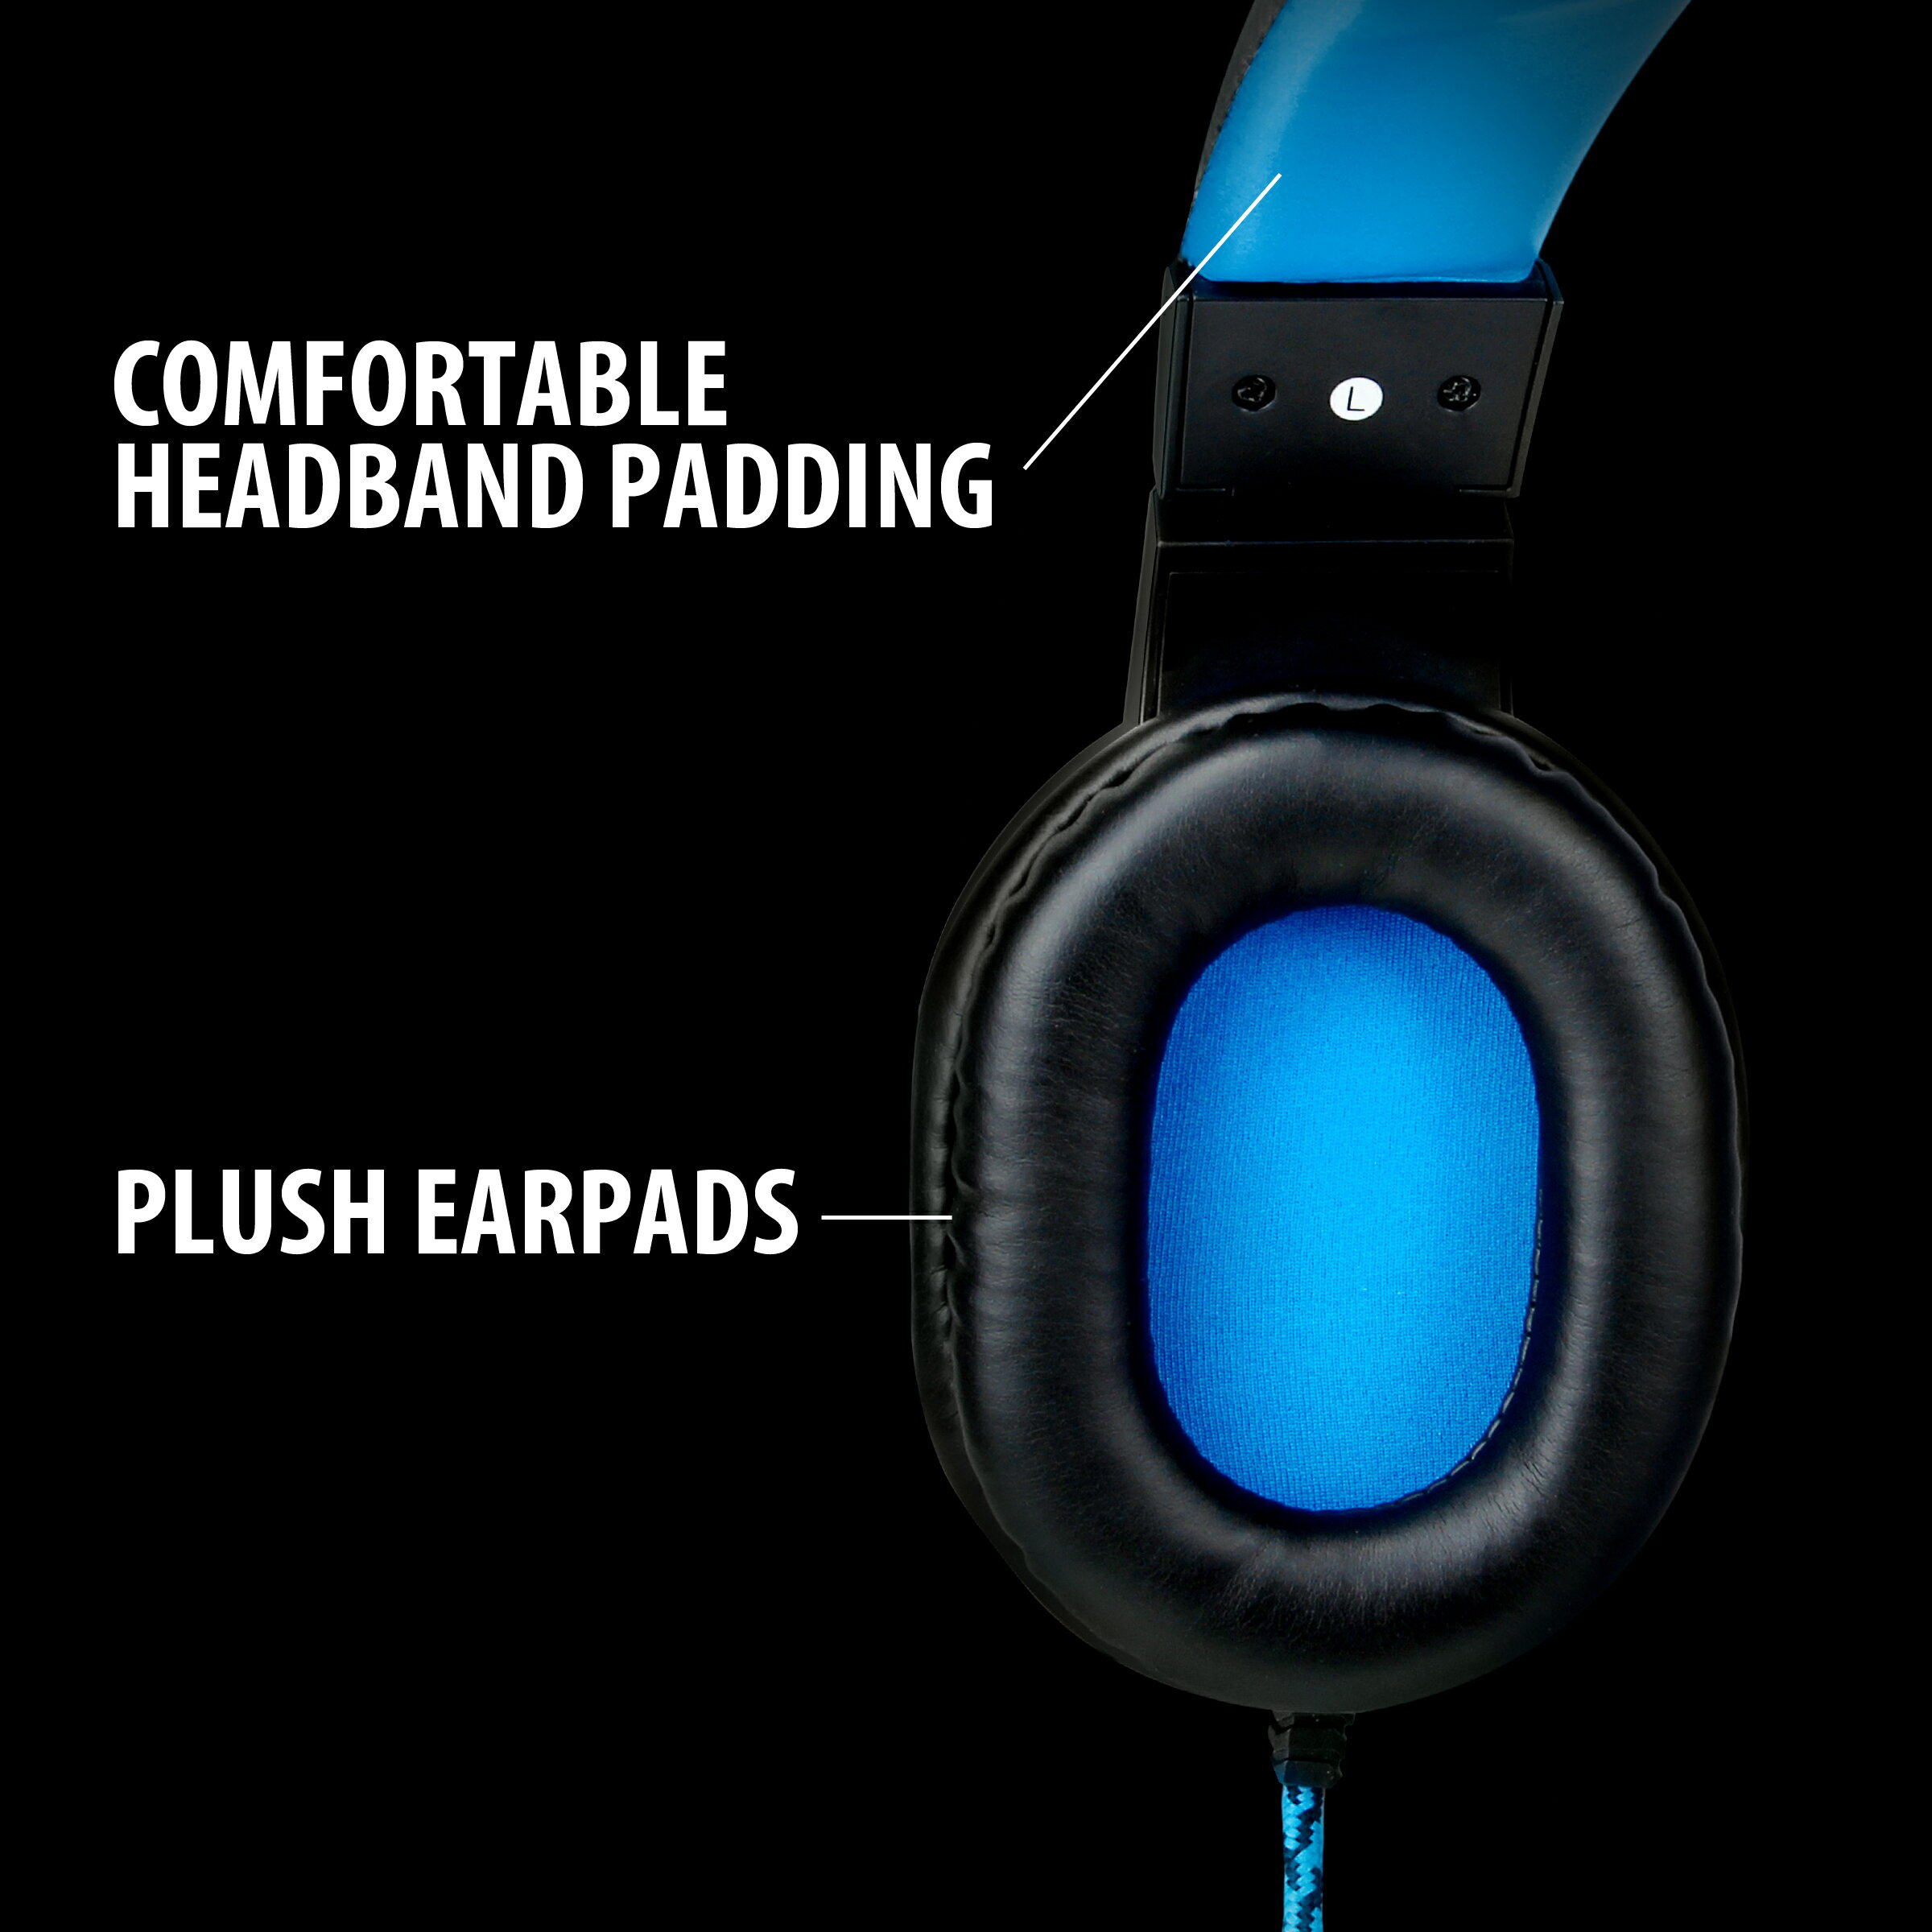 ENHANCE GX-H2 PC Headset with Comfortable Ear Padding and Adjustable Mic Works with Desktops 2